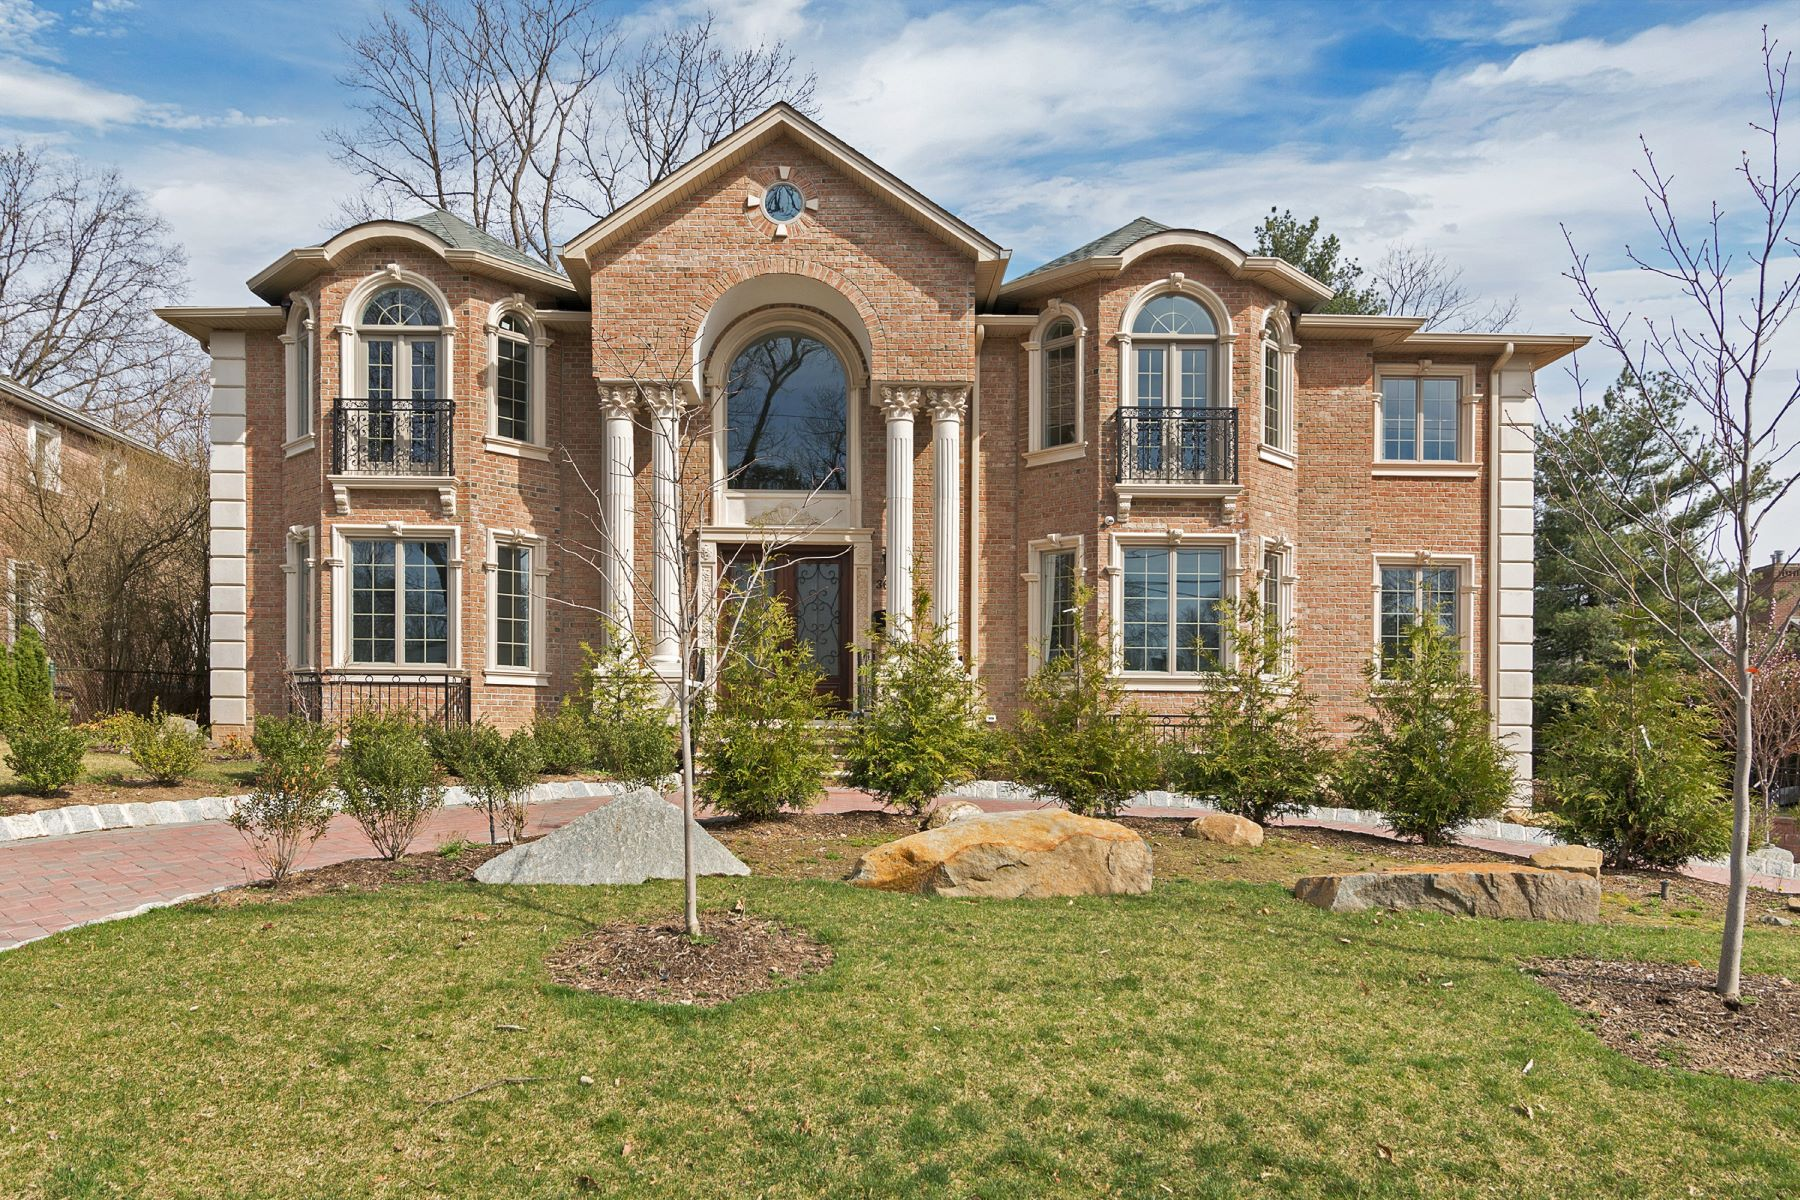 Single Family Home for Sale at 36 Cambridge Place Englewood Cliffs, New Jersey, 07632 United States